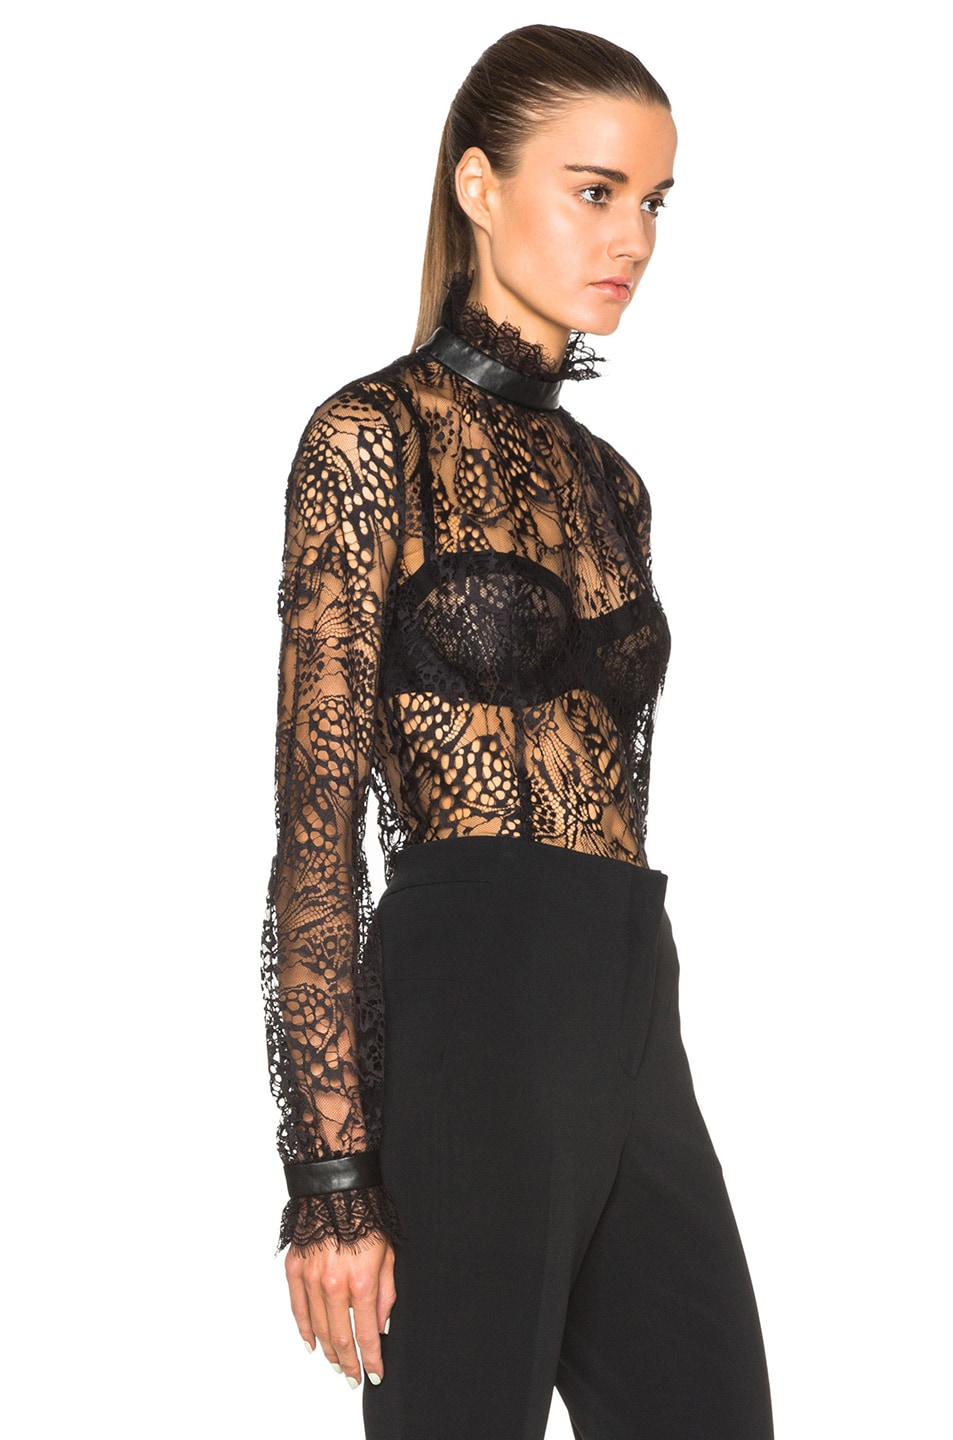 Tamara Mellon Lace Turtleneck Blouse in Black | FWRD